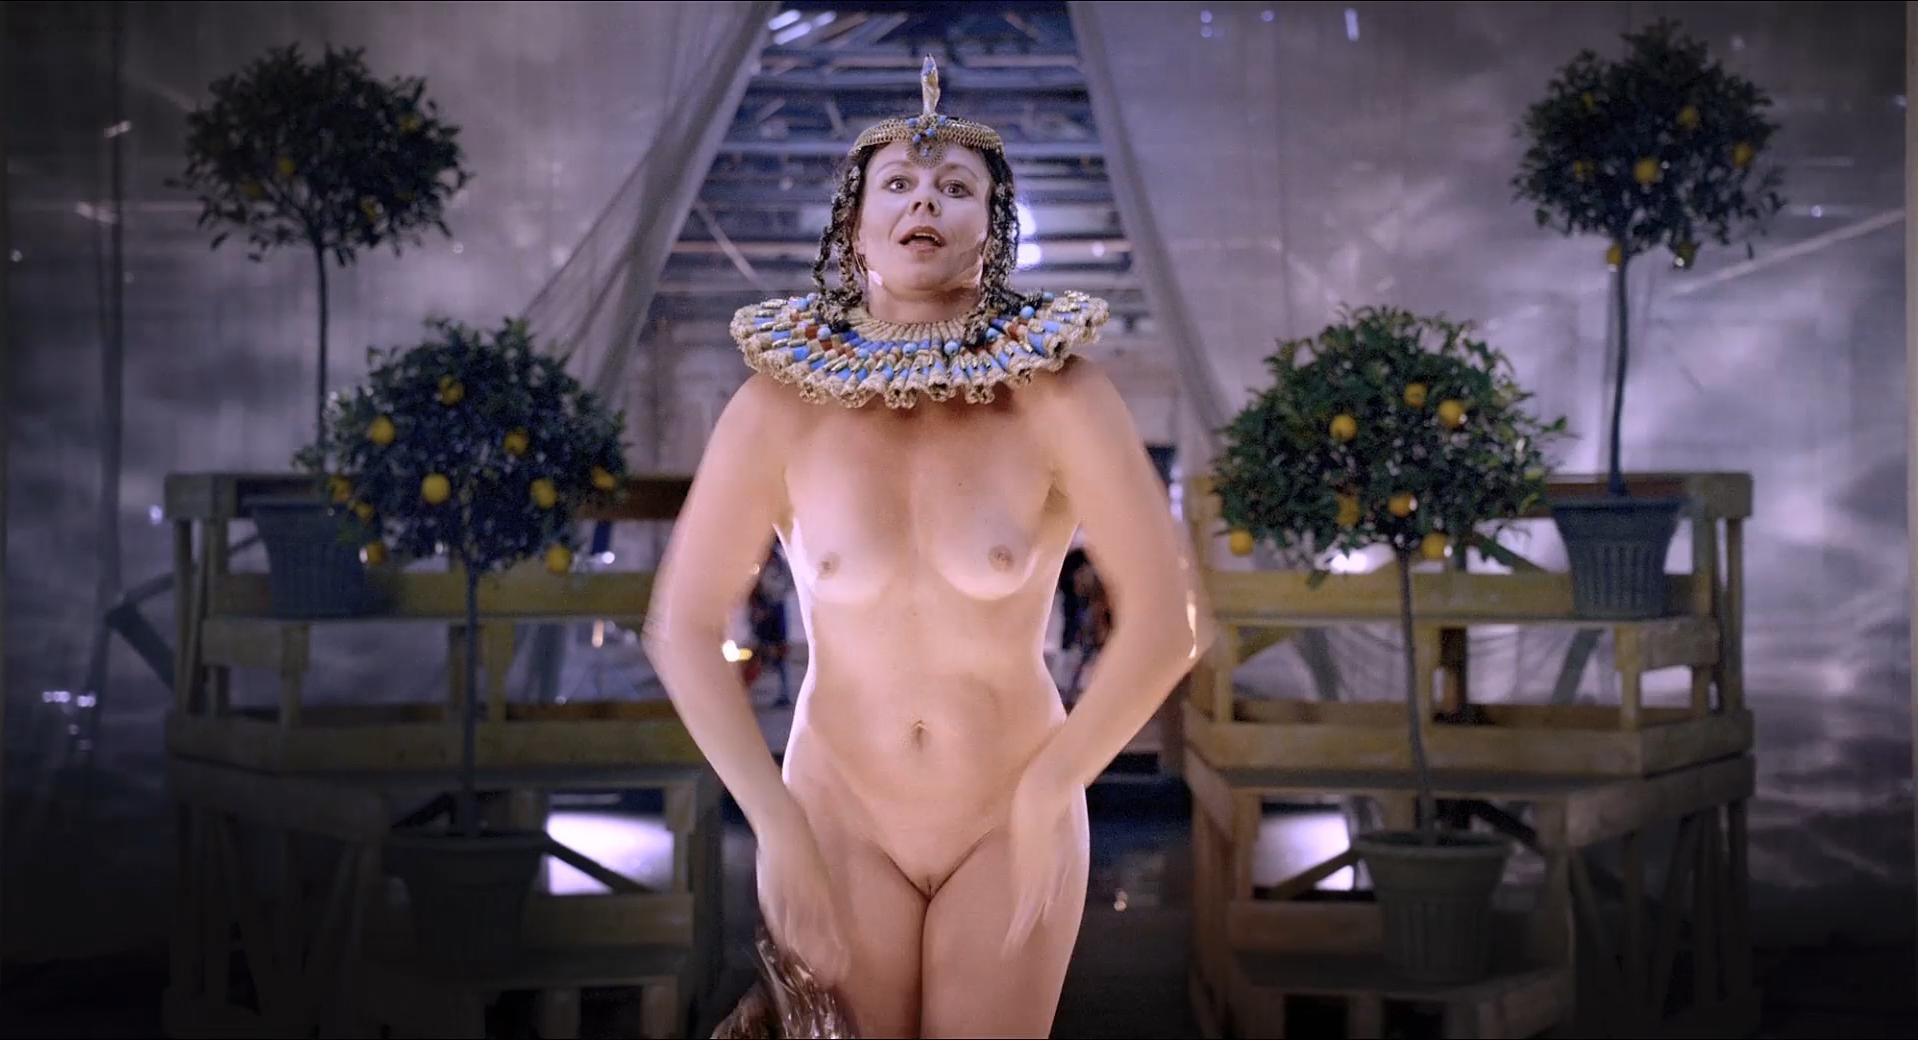 Anne heywood nude, sexy, the fappening, uncensored